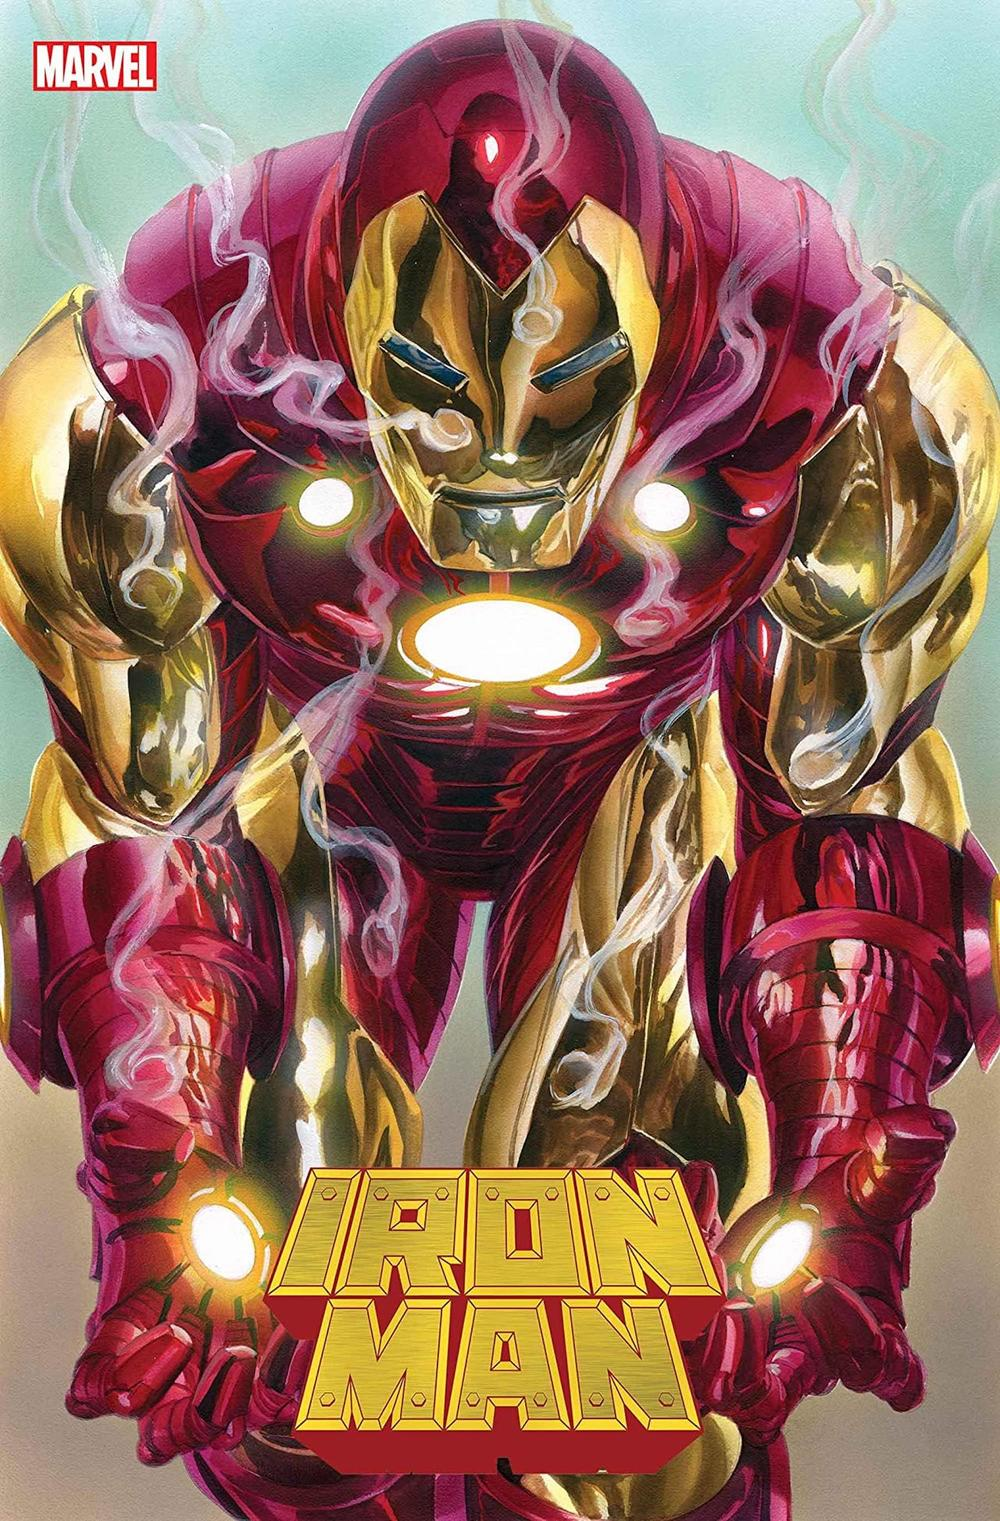 IRON MAN #2 cover by Alex Ross